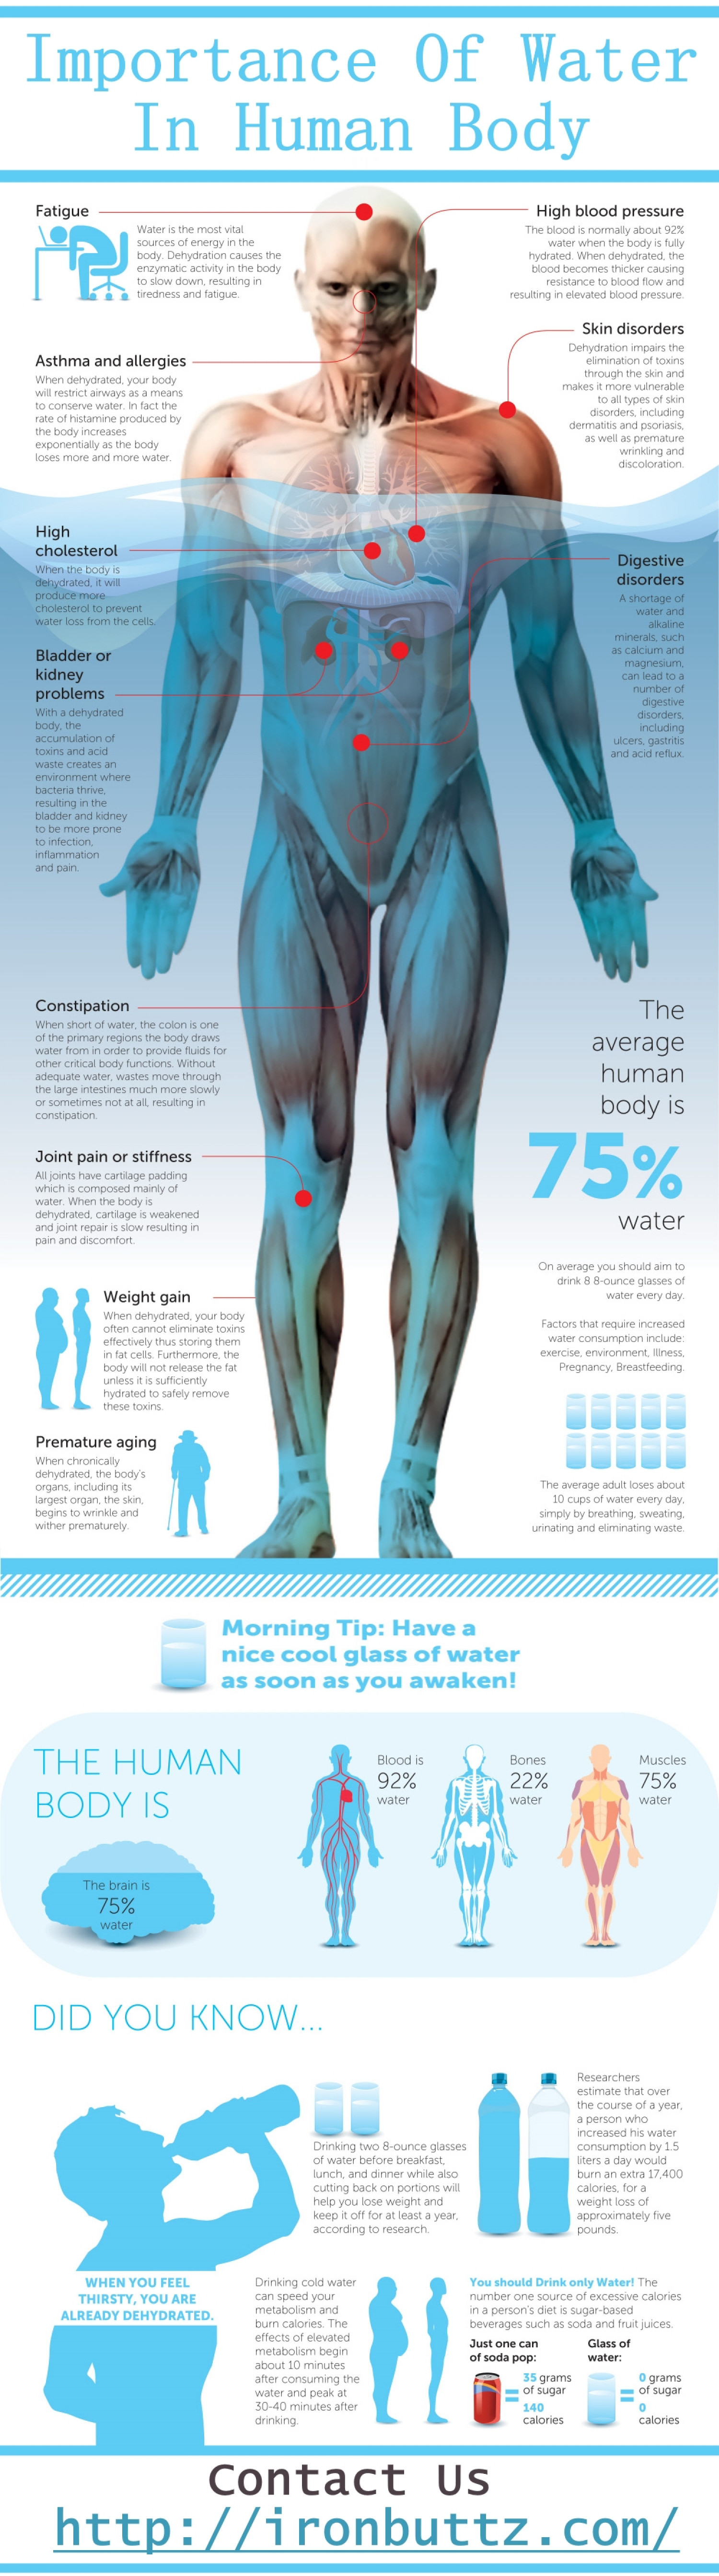 Importance Of Water In Human Body